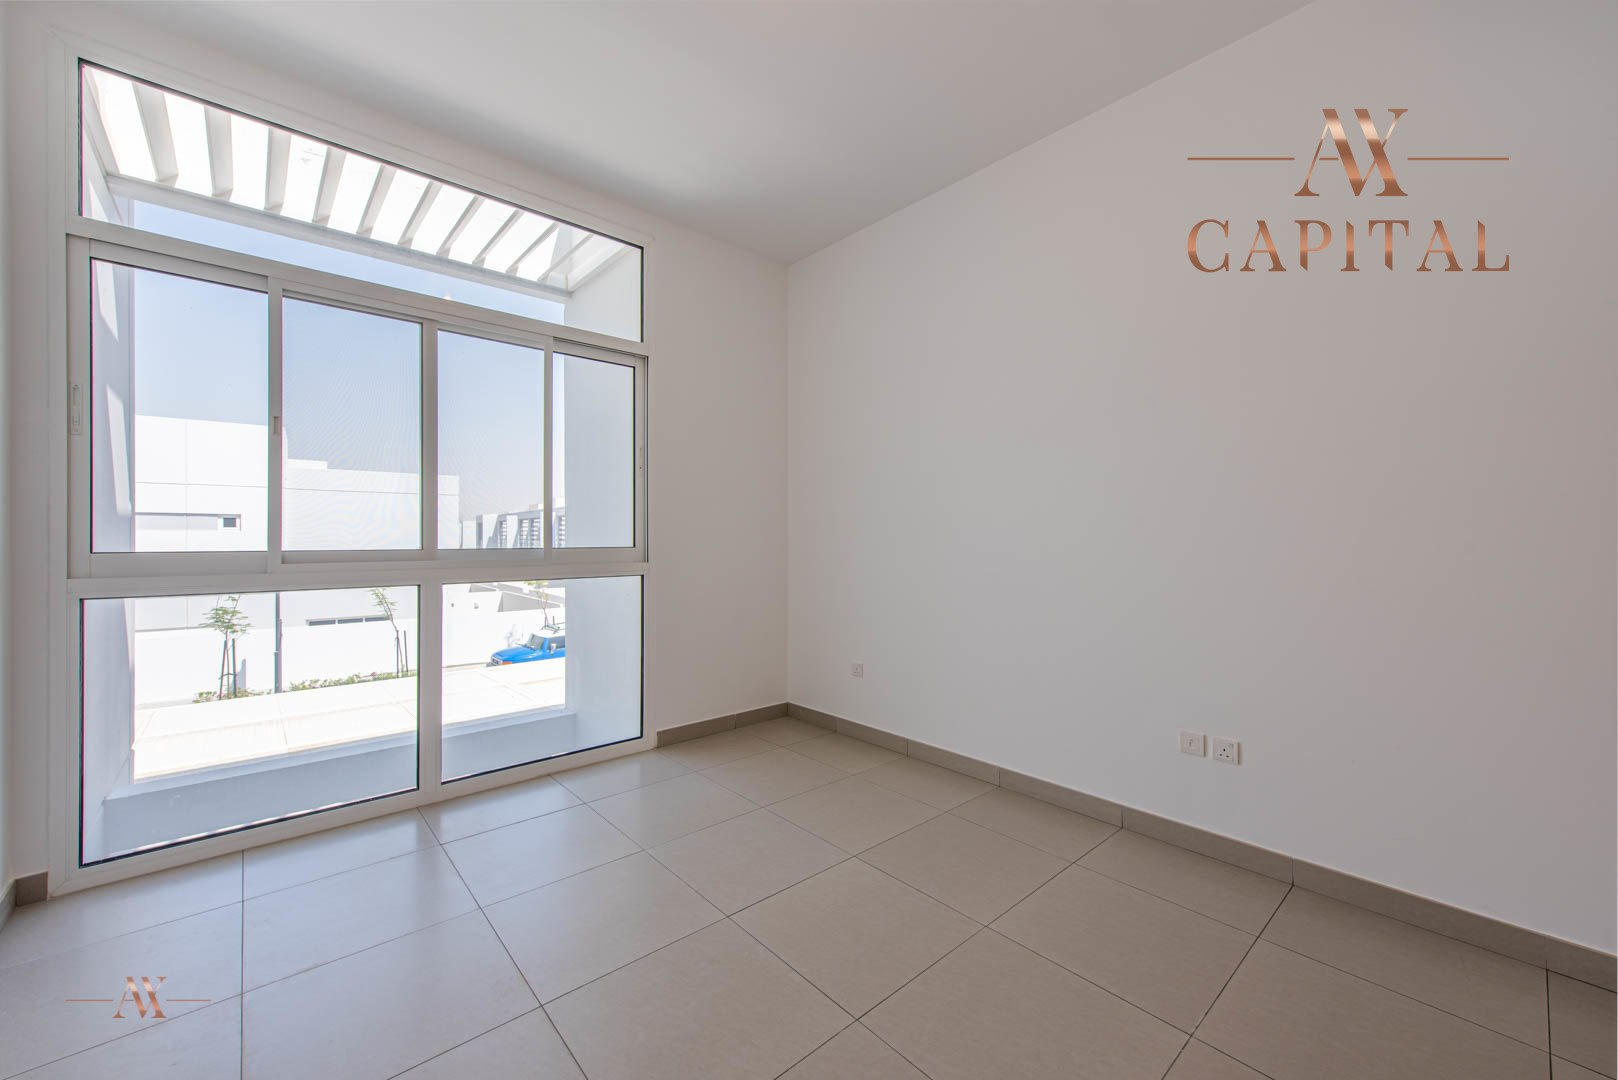 Townhouse for sale in Dubai, UAE, 3 bedrooms, 263.9 m2, No. 23637 – photo 11